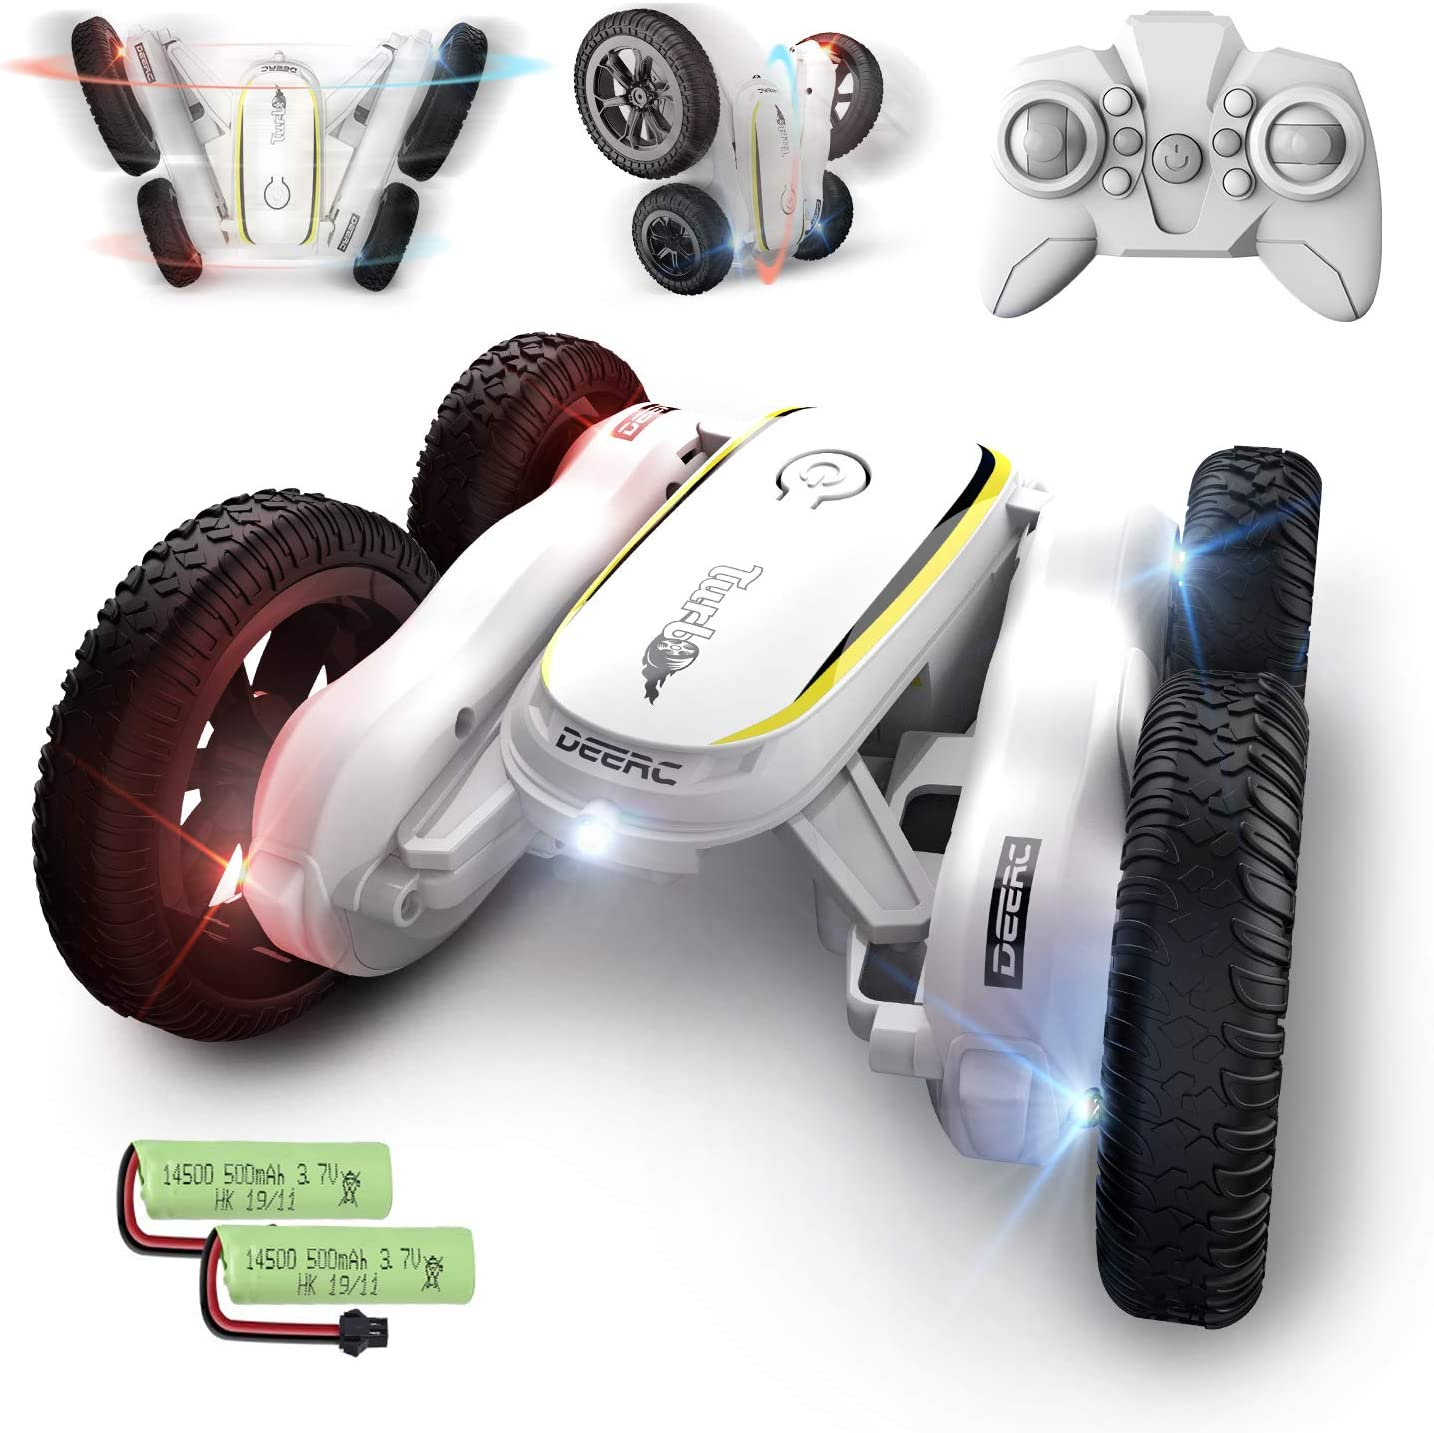 DEERC RC Stunt Cars Remote Control Car Toys for Kids